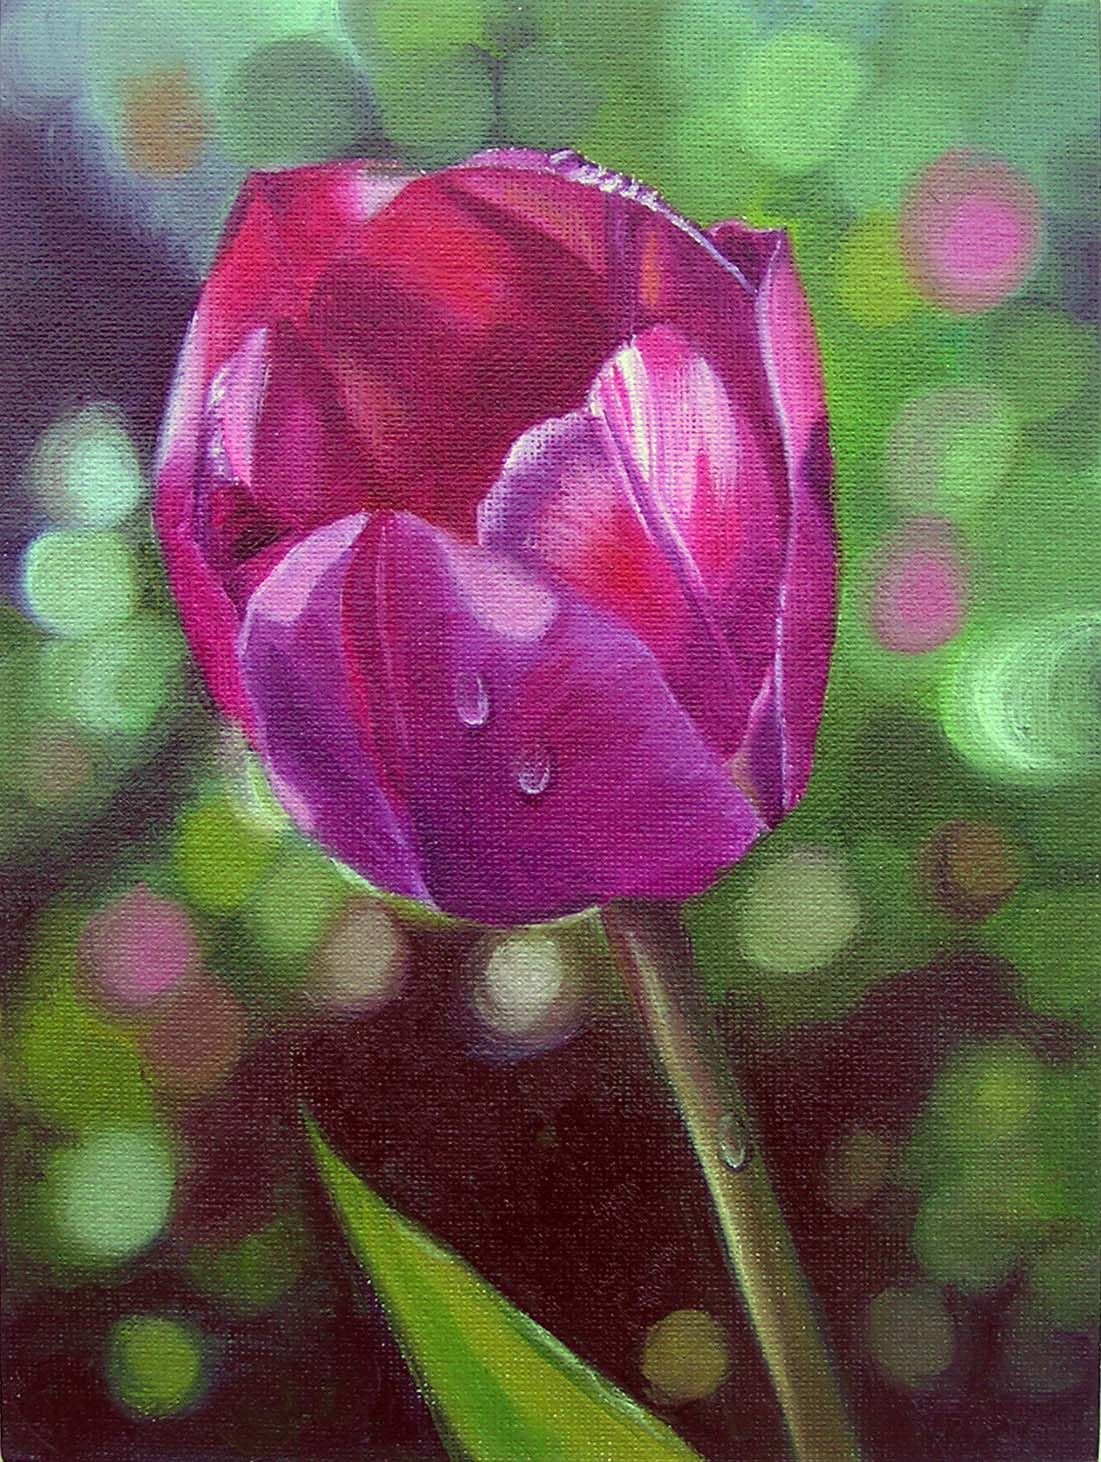 Purple Tulip - Original flower oil painting by Doris Joa